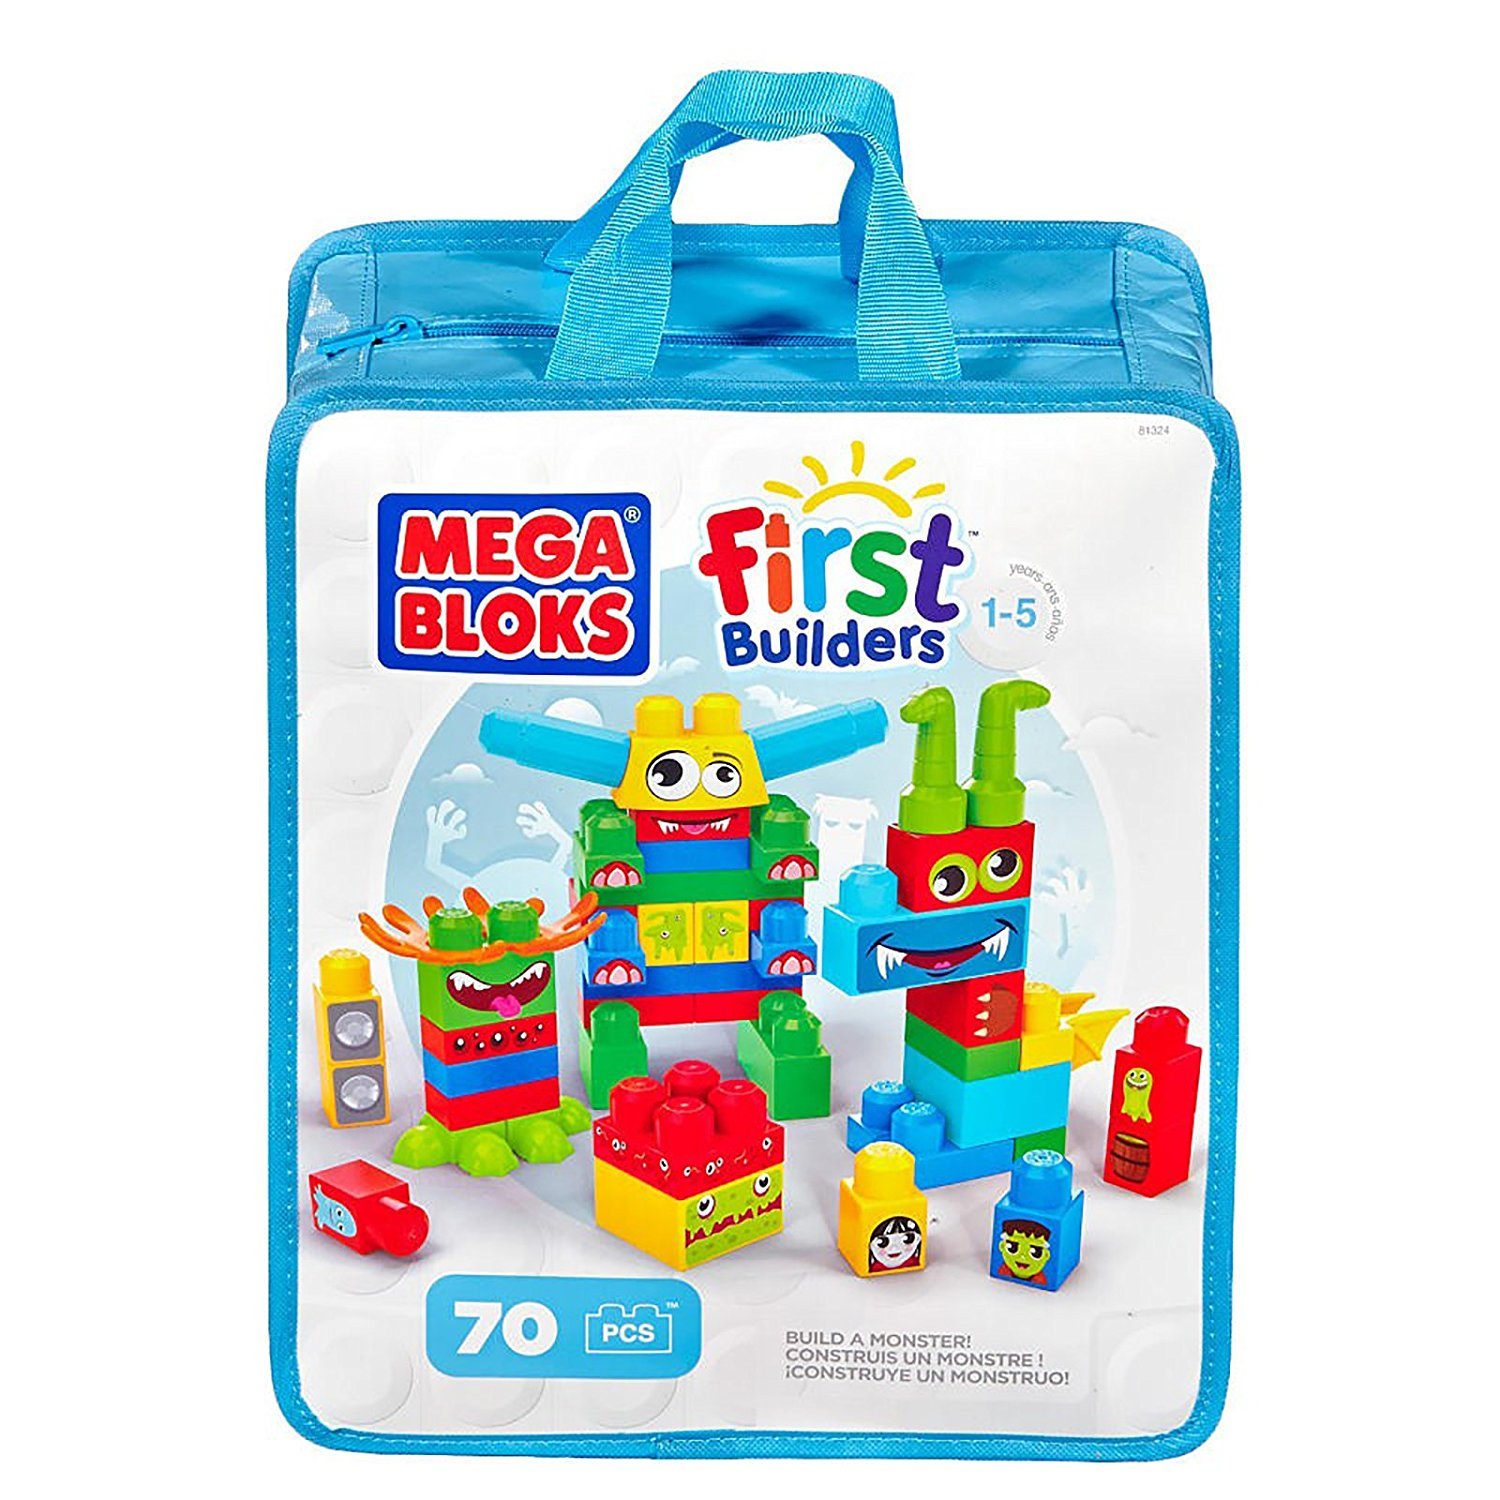 Mega Bloks First Builders Make a Monster Bag (224186455), Parallel import goods By Mega Brands